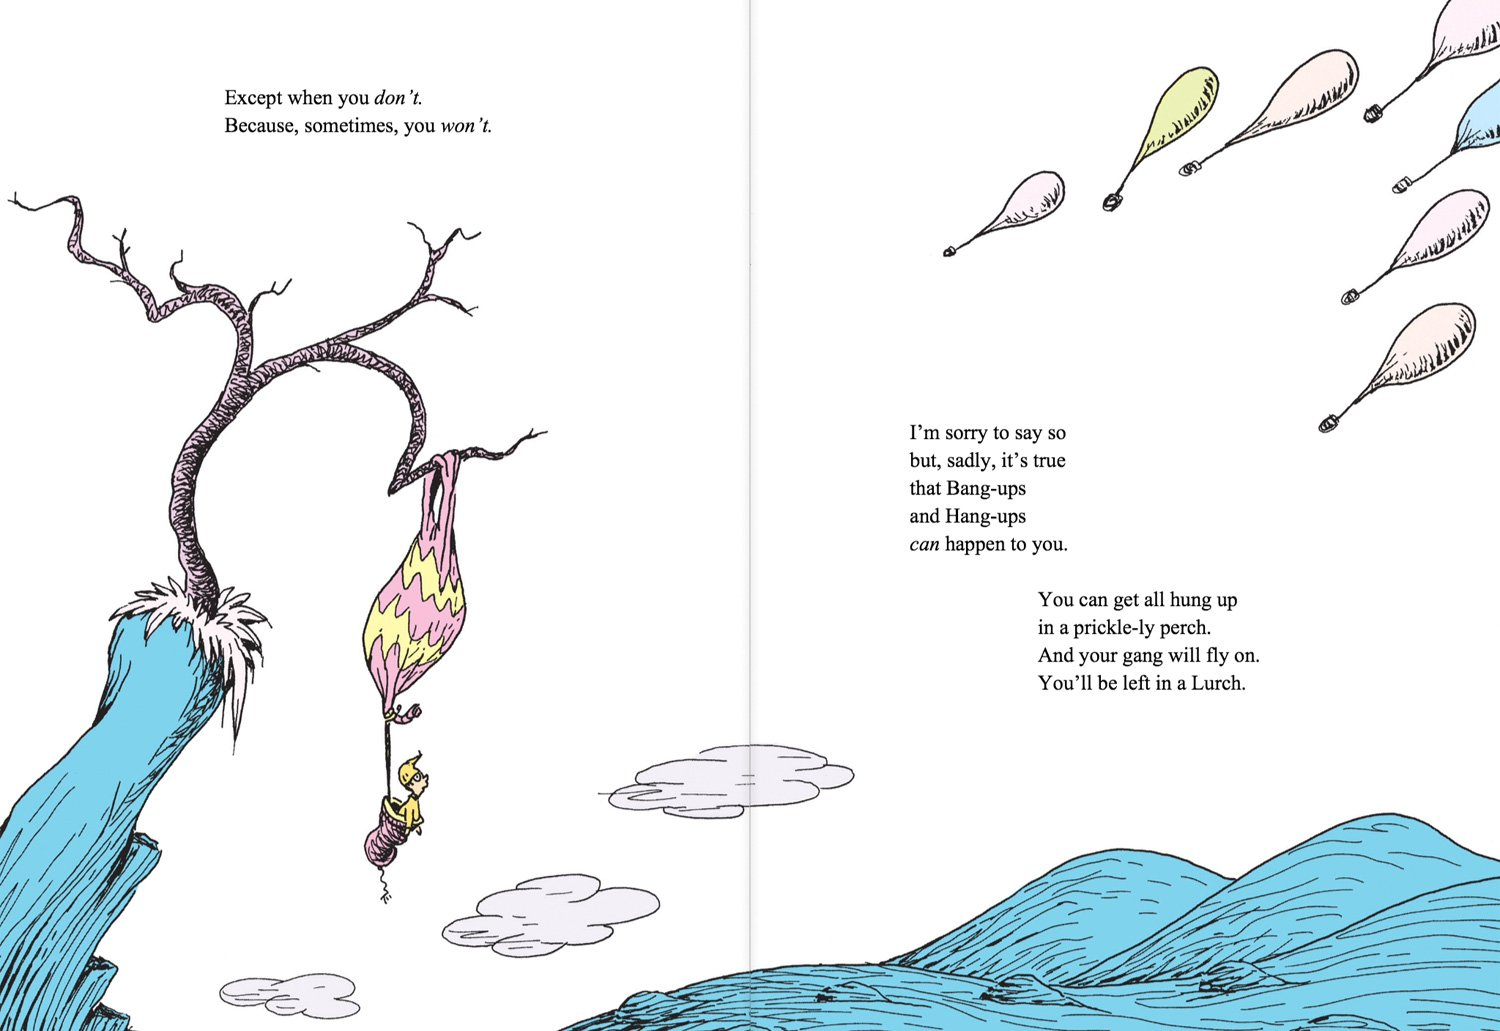 Buy Oh, The Places You'll Go (Dr. Seuss) Book Online at Low Prices in India  | Oh, The Places You'll Go (Dr. Seuss) Reviews & Ratings - Amazon.in